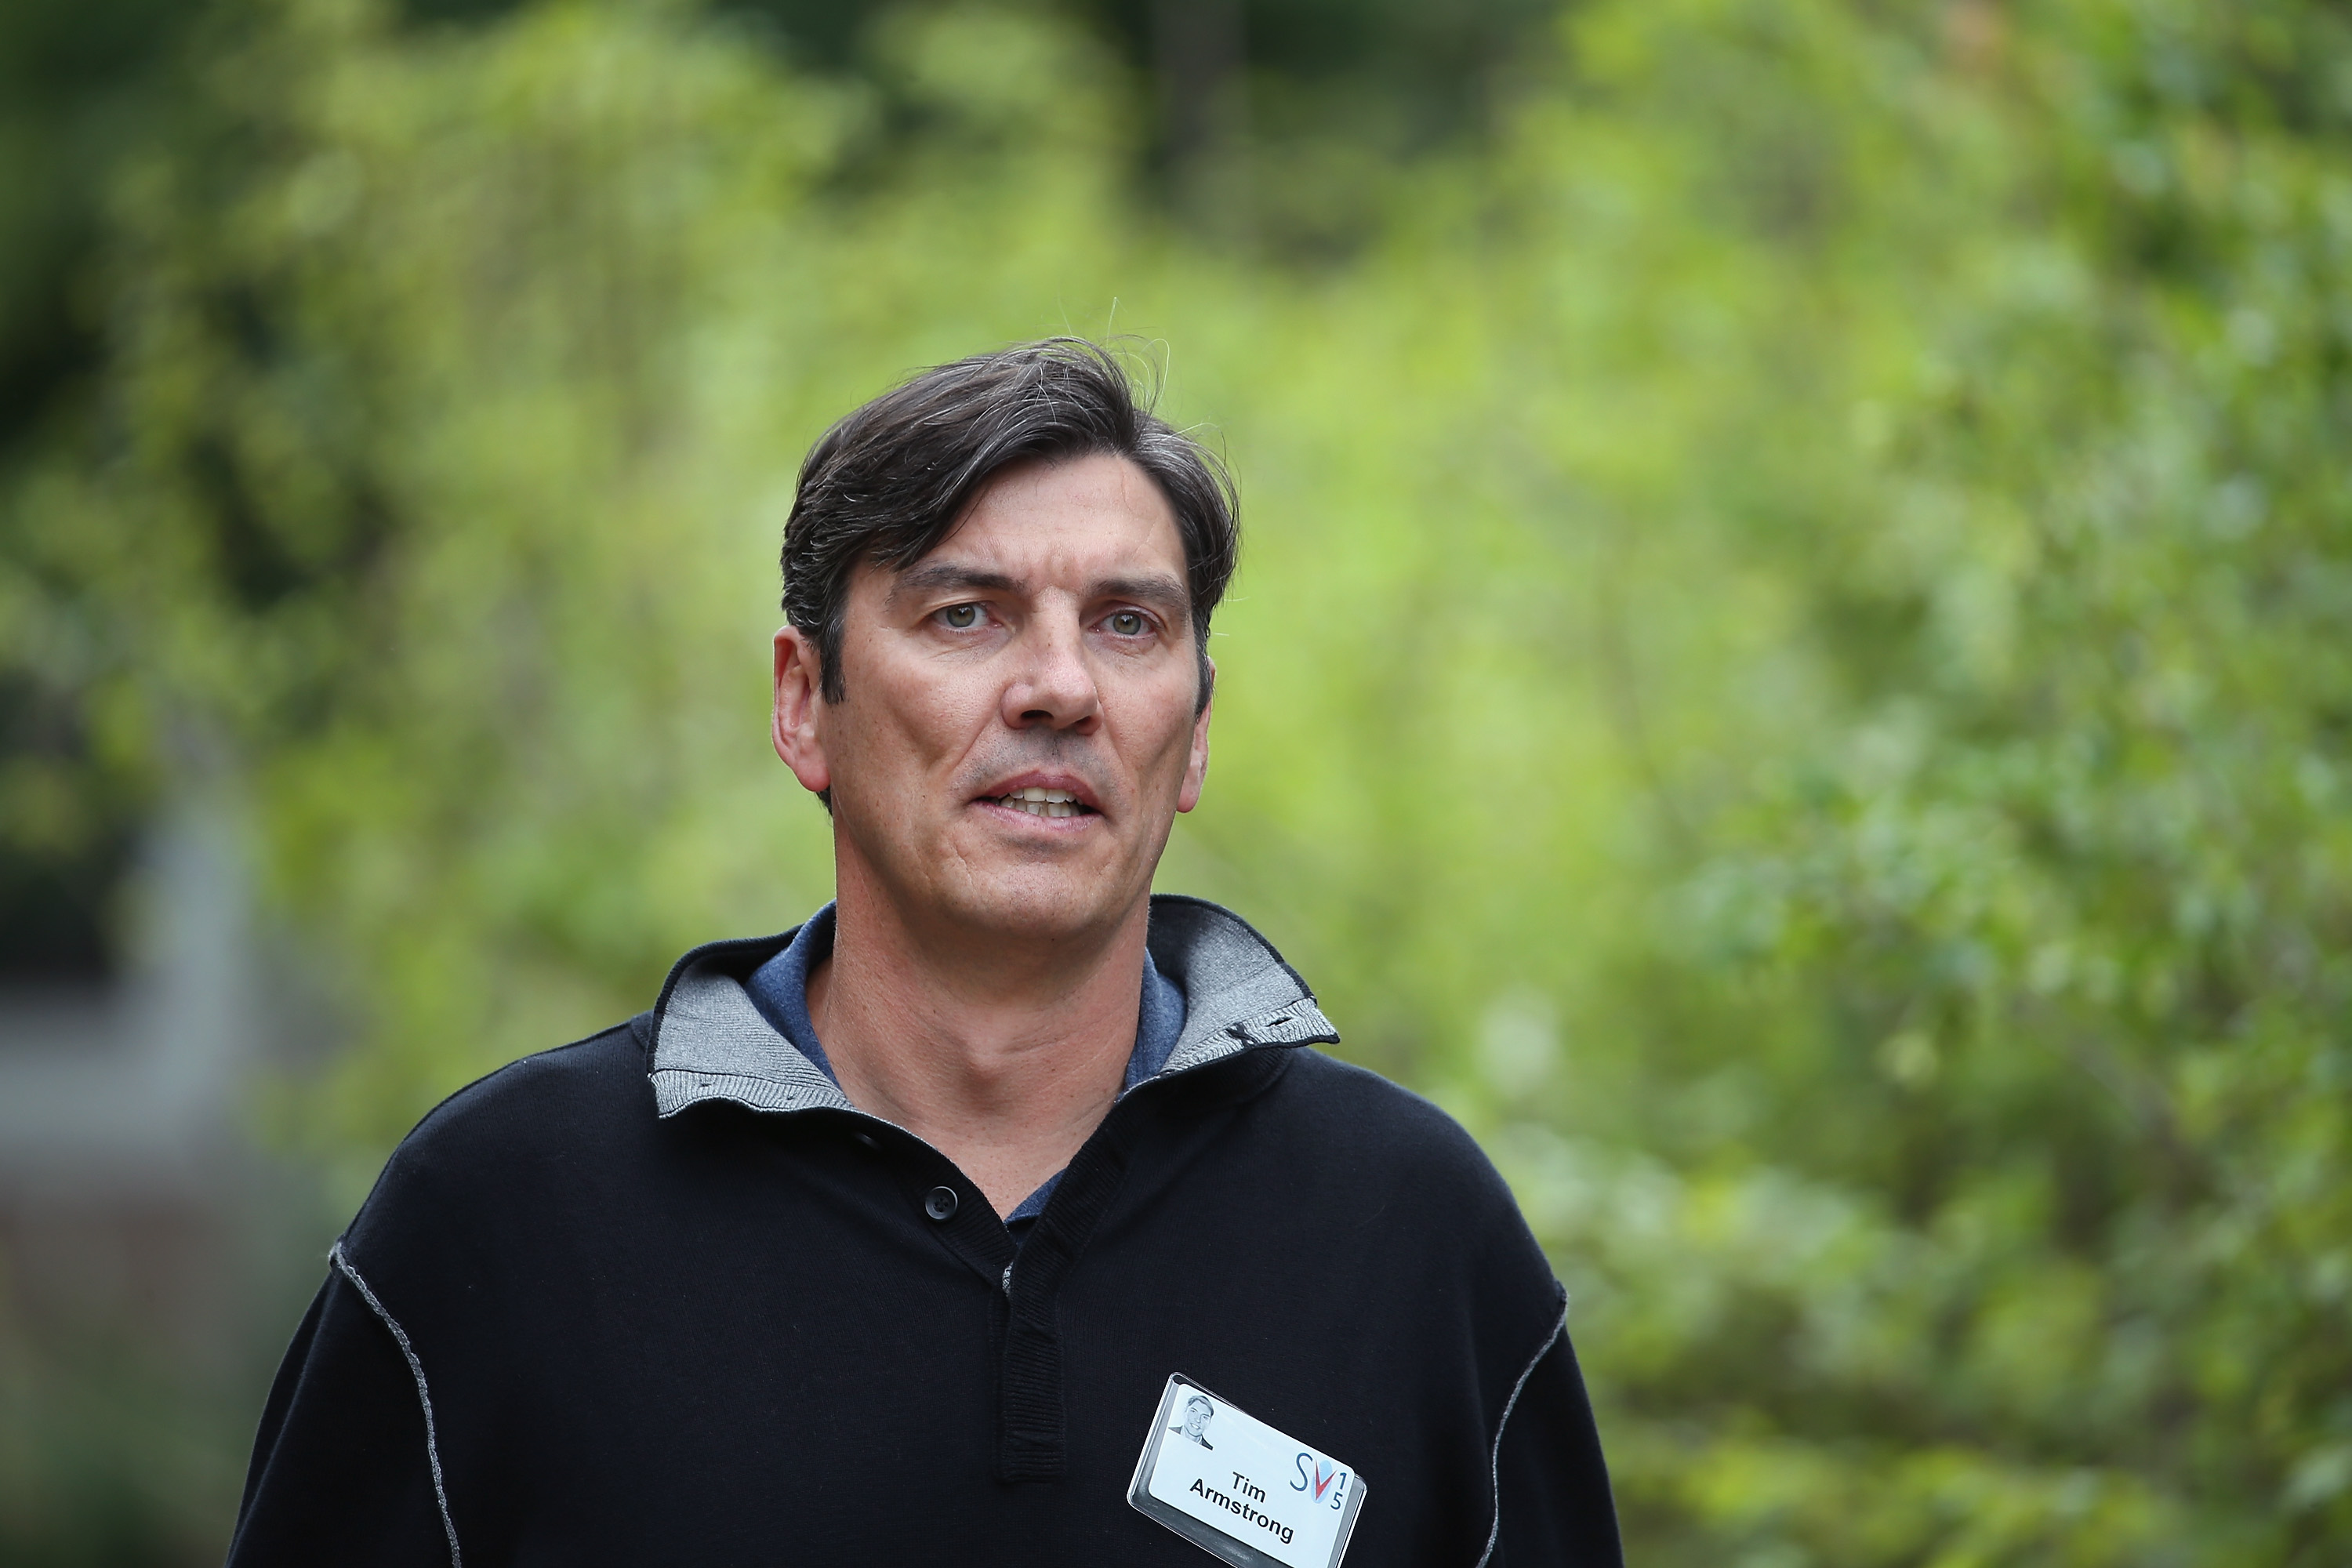 AOL CEO Tim Armstrong in Sun Valley, Idaho in July 2015.